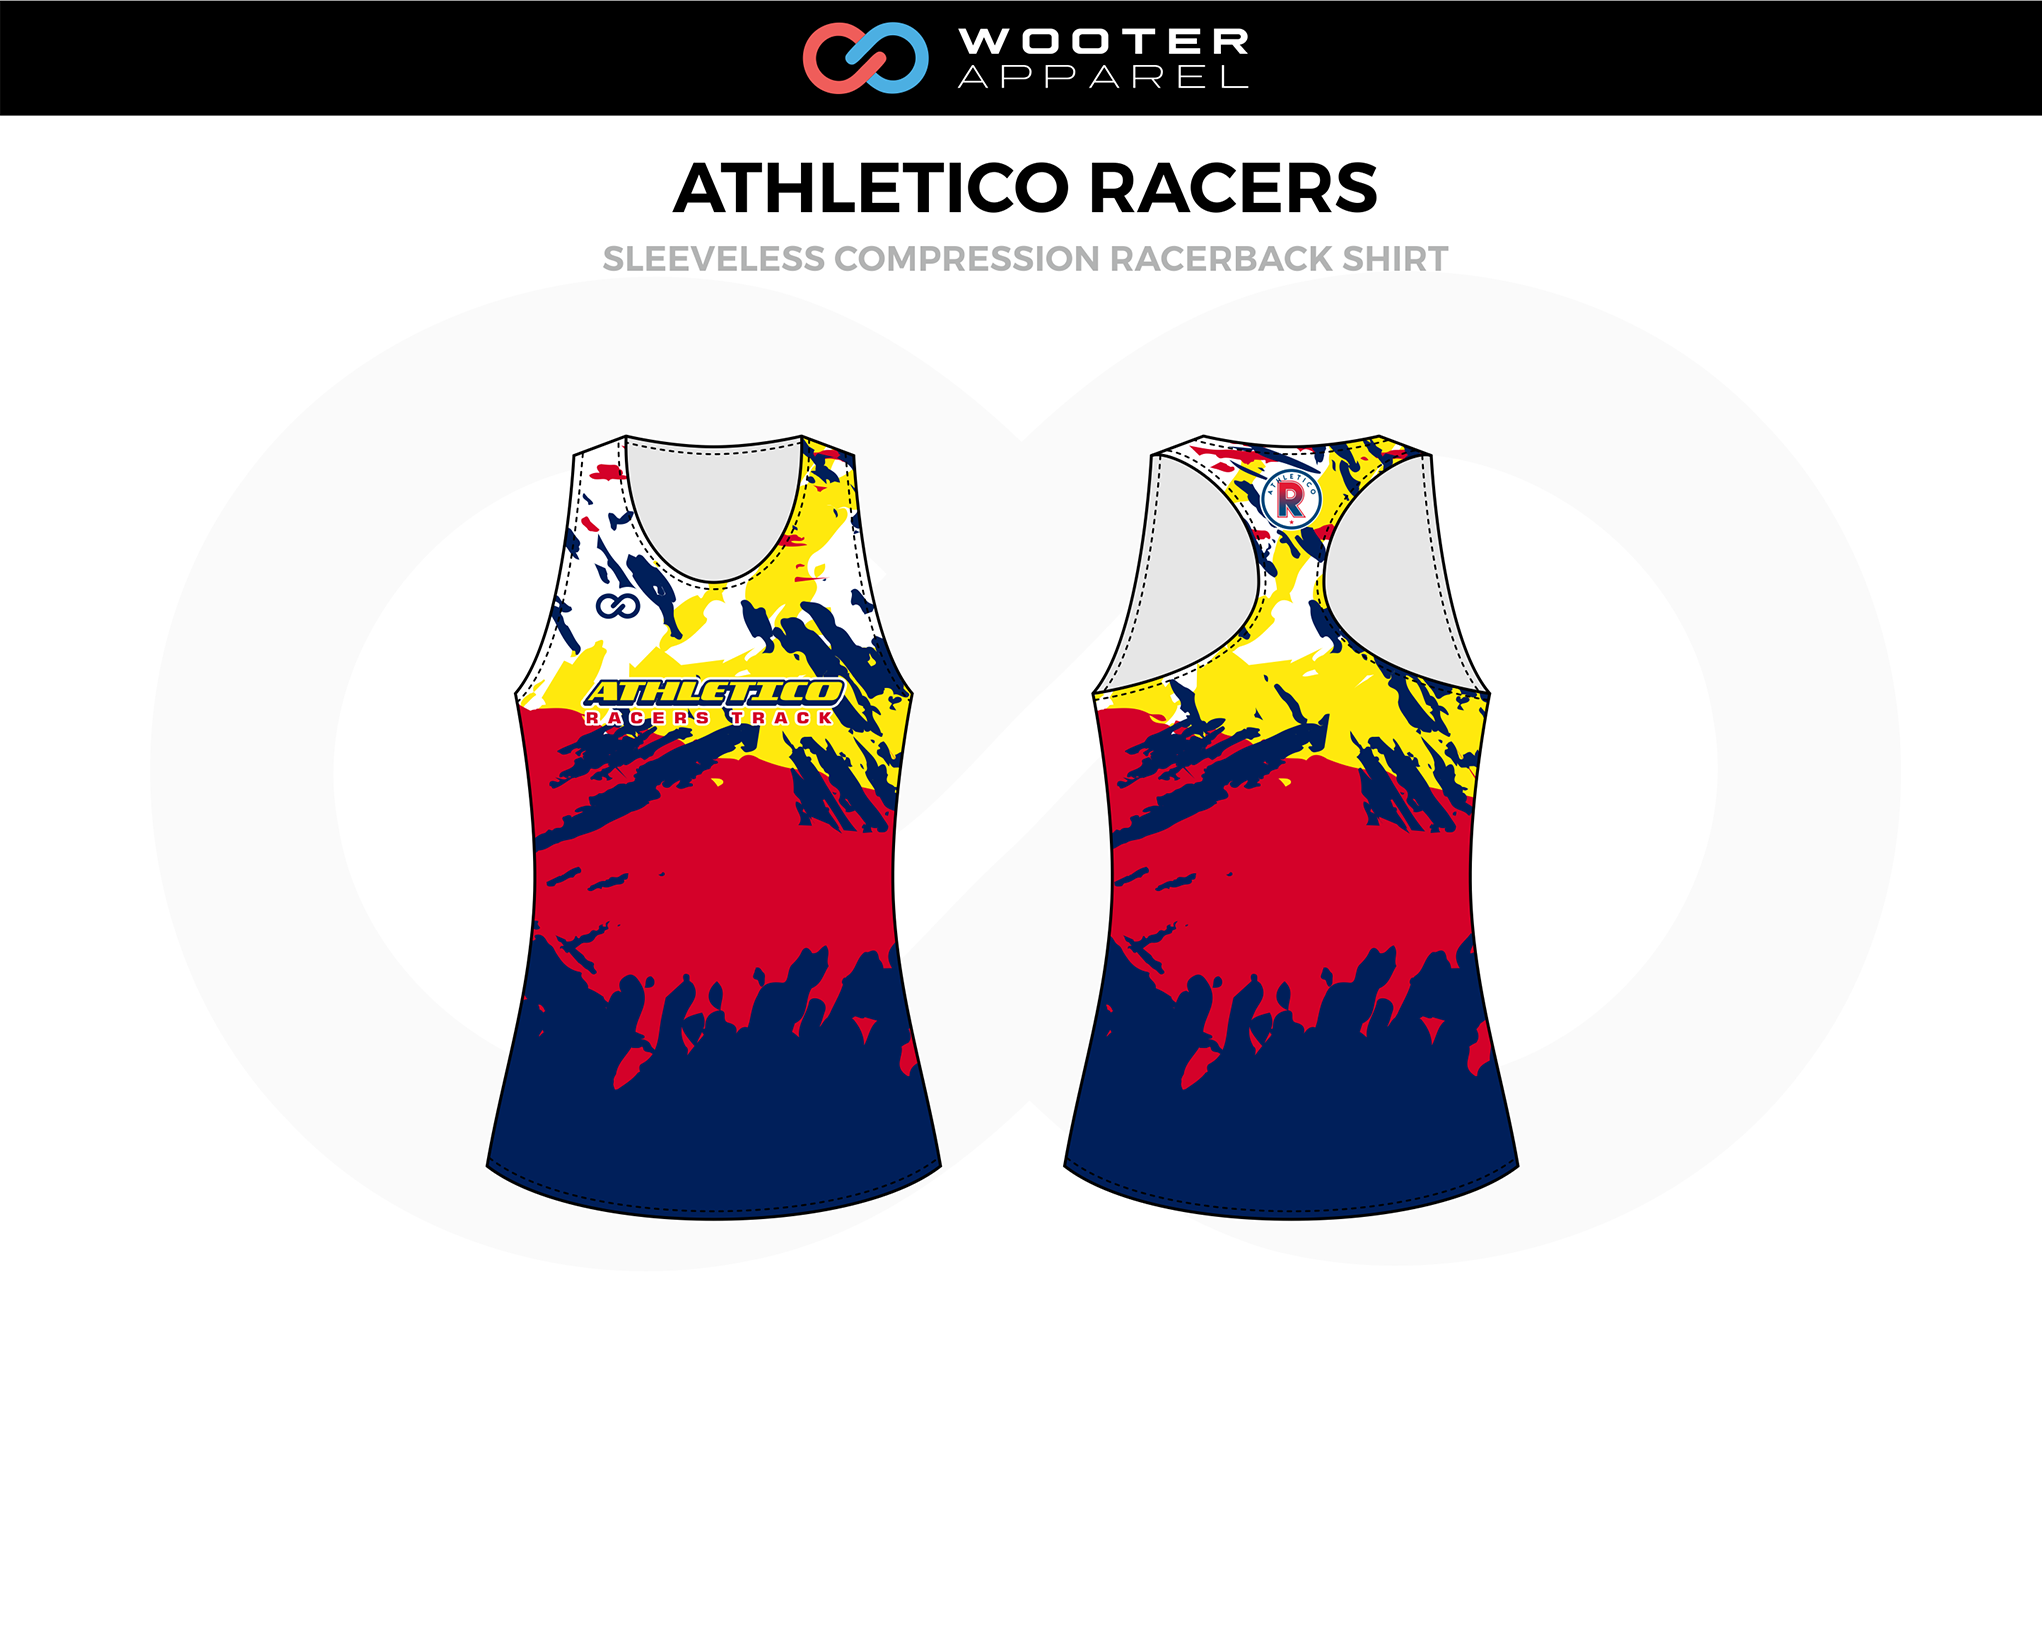 ATHLETICO RACERS Blue Red Yellow Sleeveless Compression Racerback Jersey